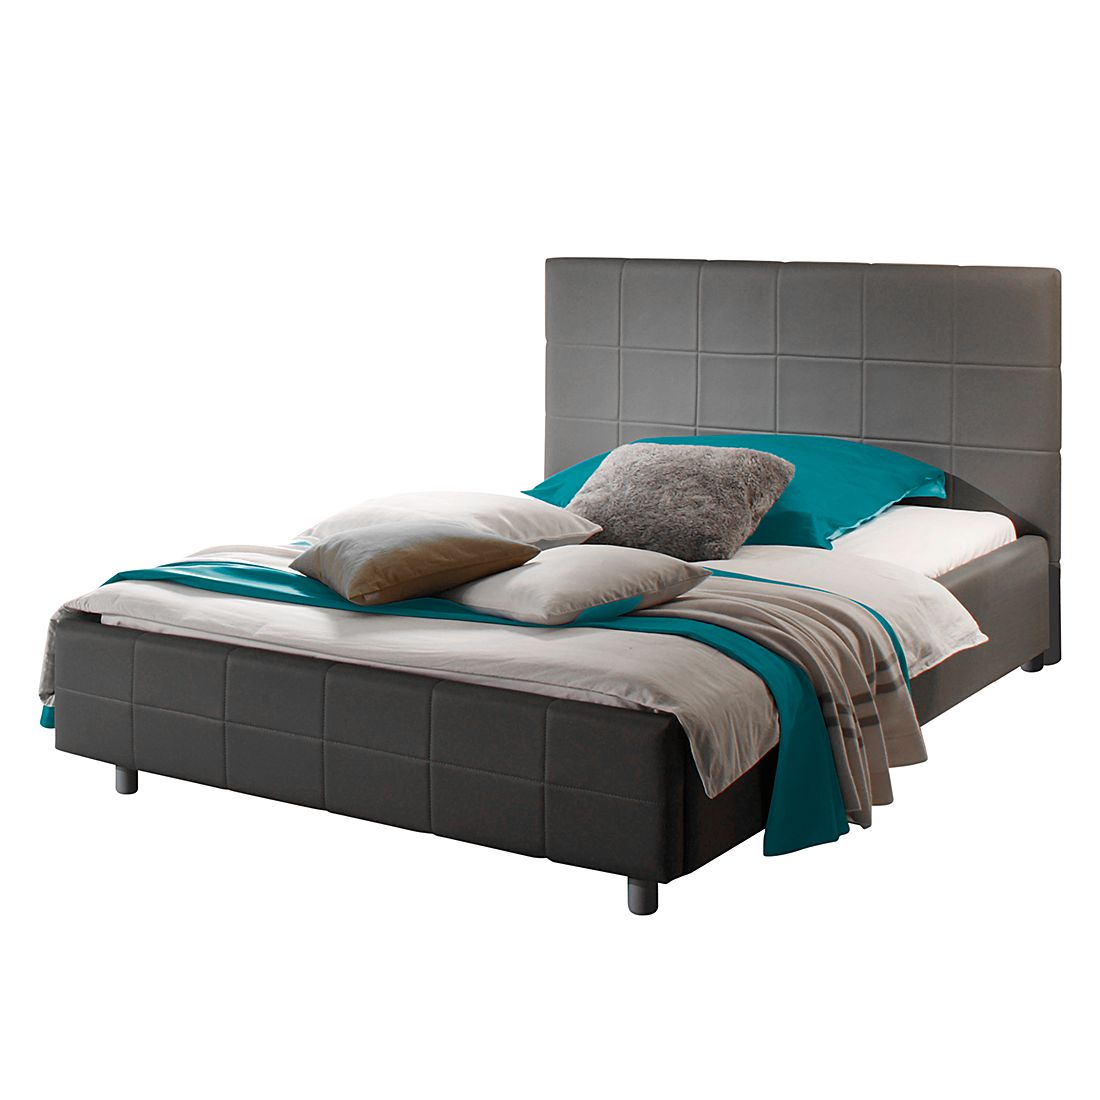 polsterbetten online kaufen m bel suchmaschine. Black Bedroom Furniture Sets. Home Design Ideas